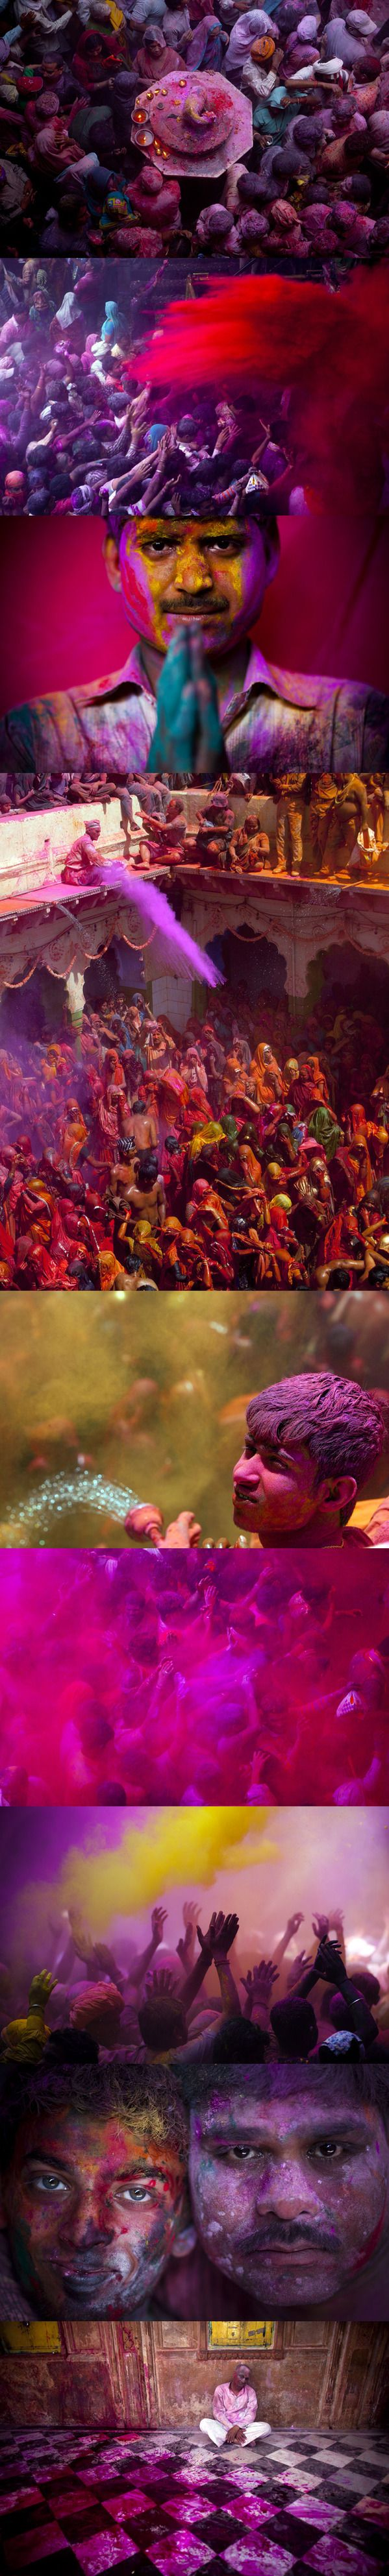 bucket list! One Day... I will go to this... Before i die... Holi Festival - India  Holi or Holika originated in ancient India as a festival that symbolizes good triumphing over evil. The day following the ritual is a the colorful celebration. The day, called Dhuleti, is celebrated by throwing colored powder in the air, at other people, and in every direction.   #spirithoods #inneranimal